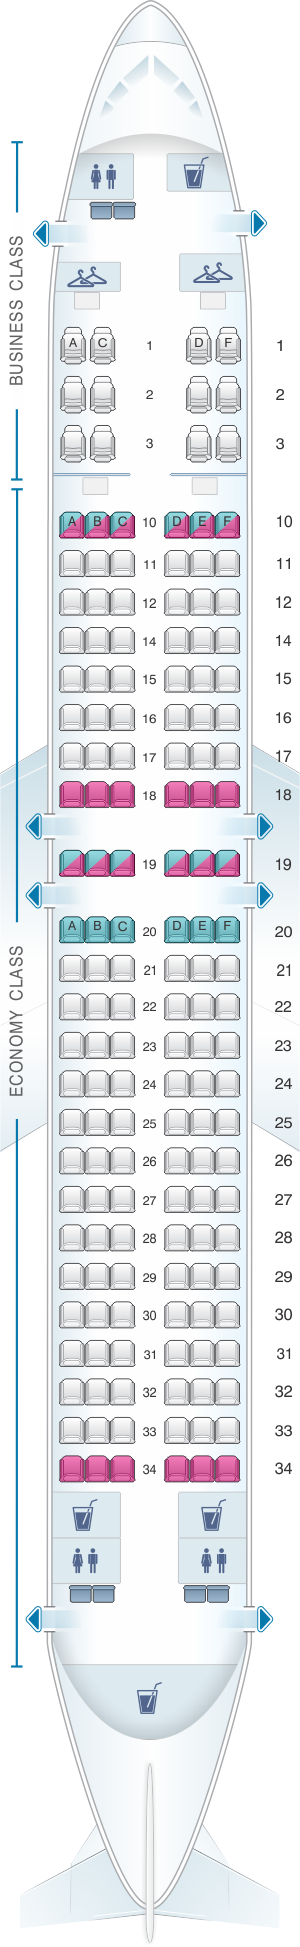 Seat map for Oman Air Boeing B737 800 V1